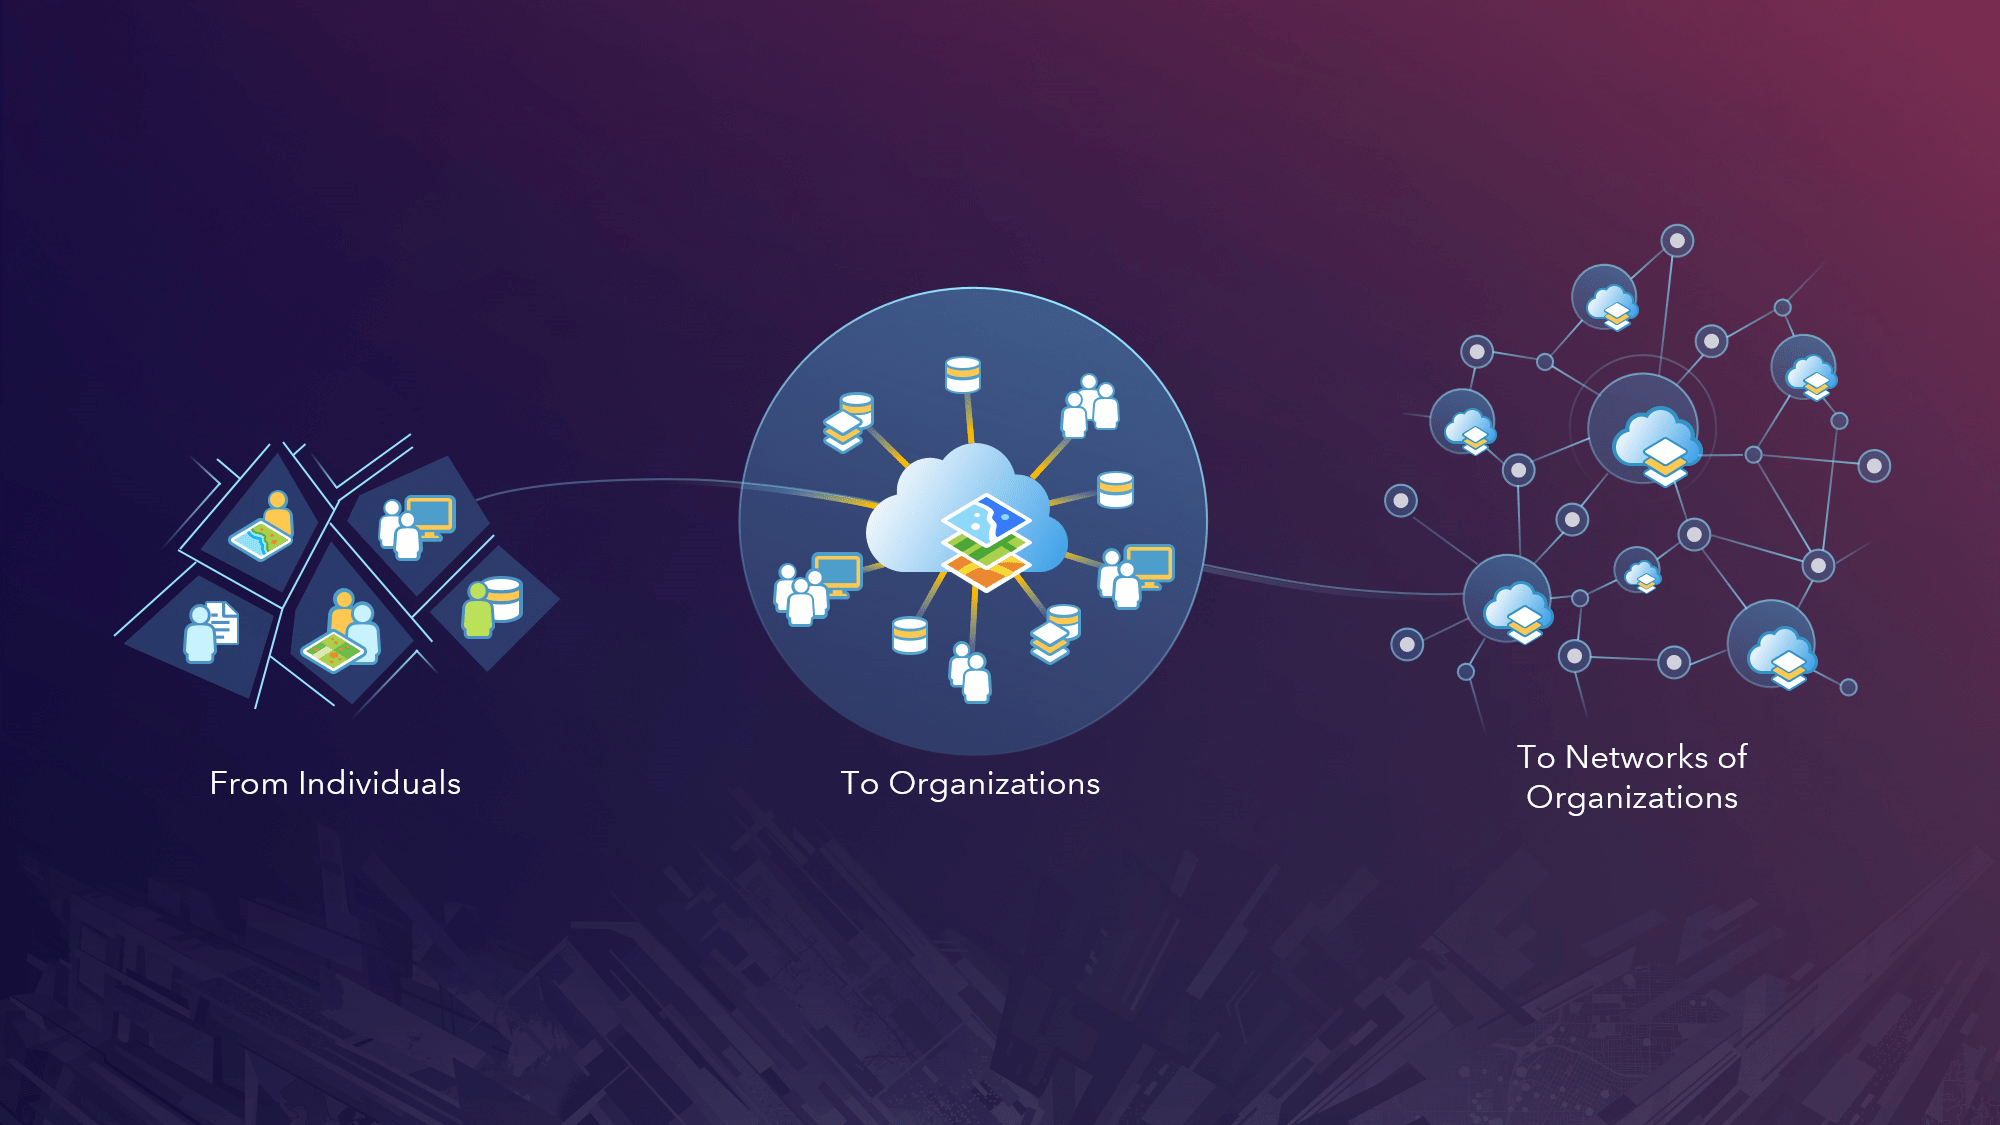 Distributed collaboration network